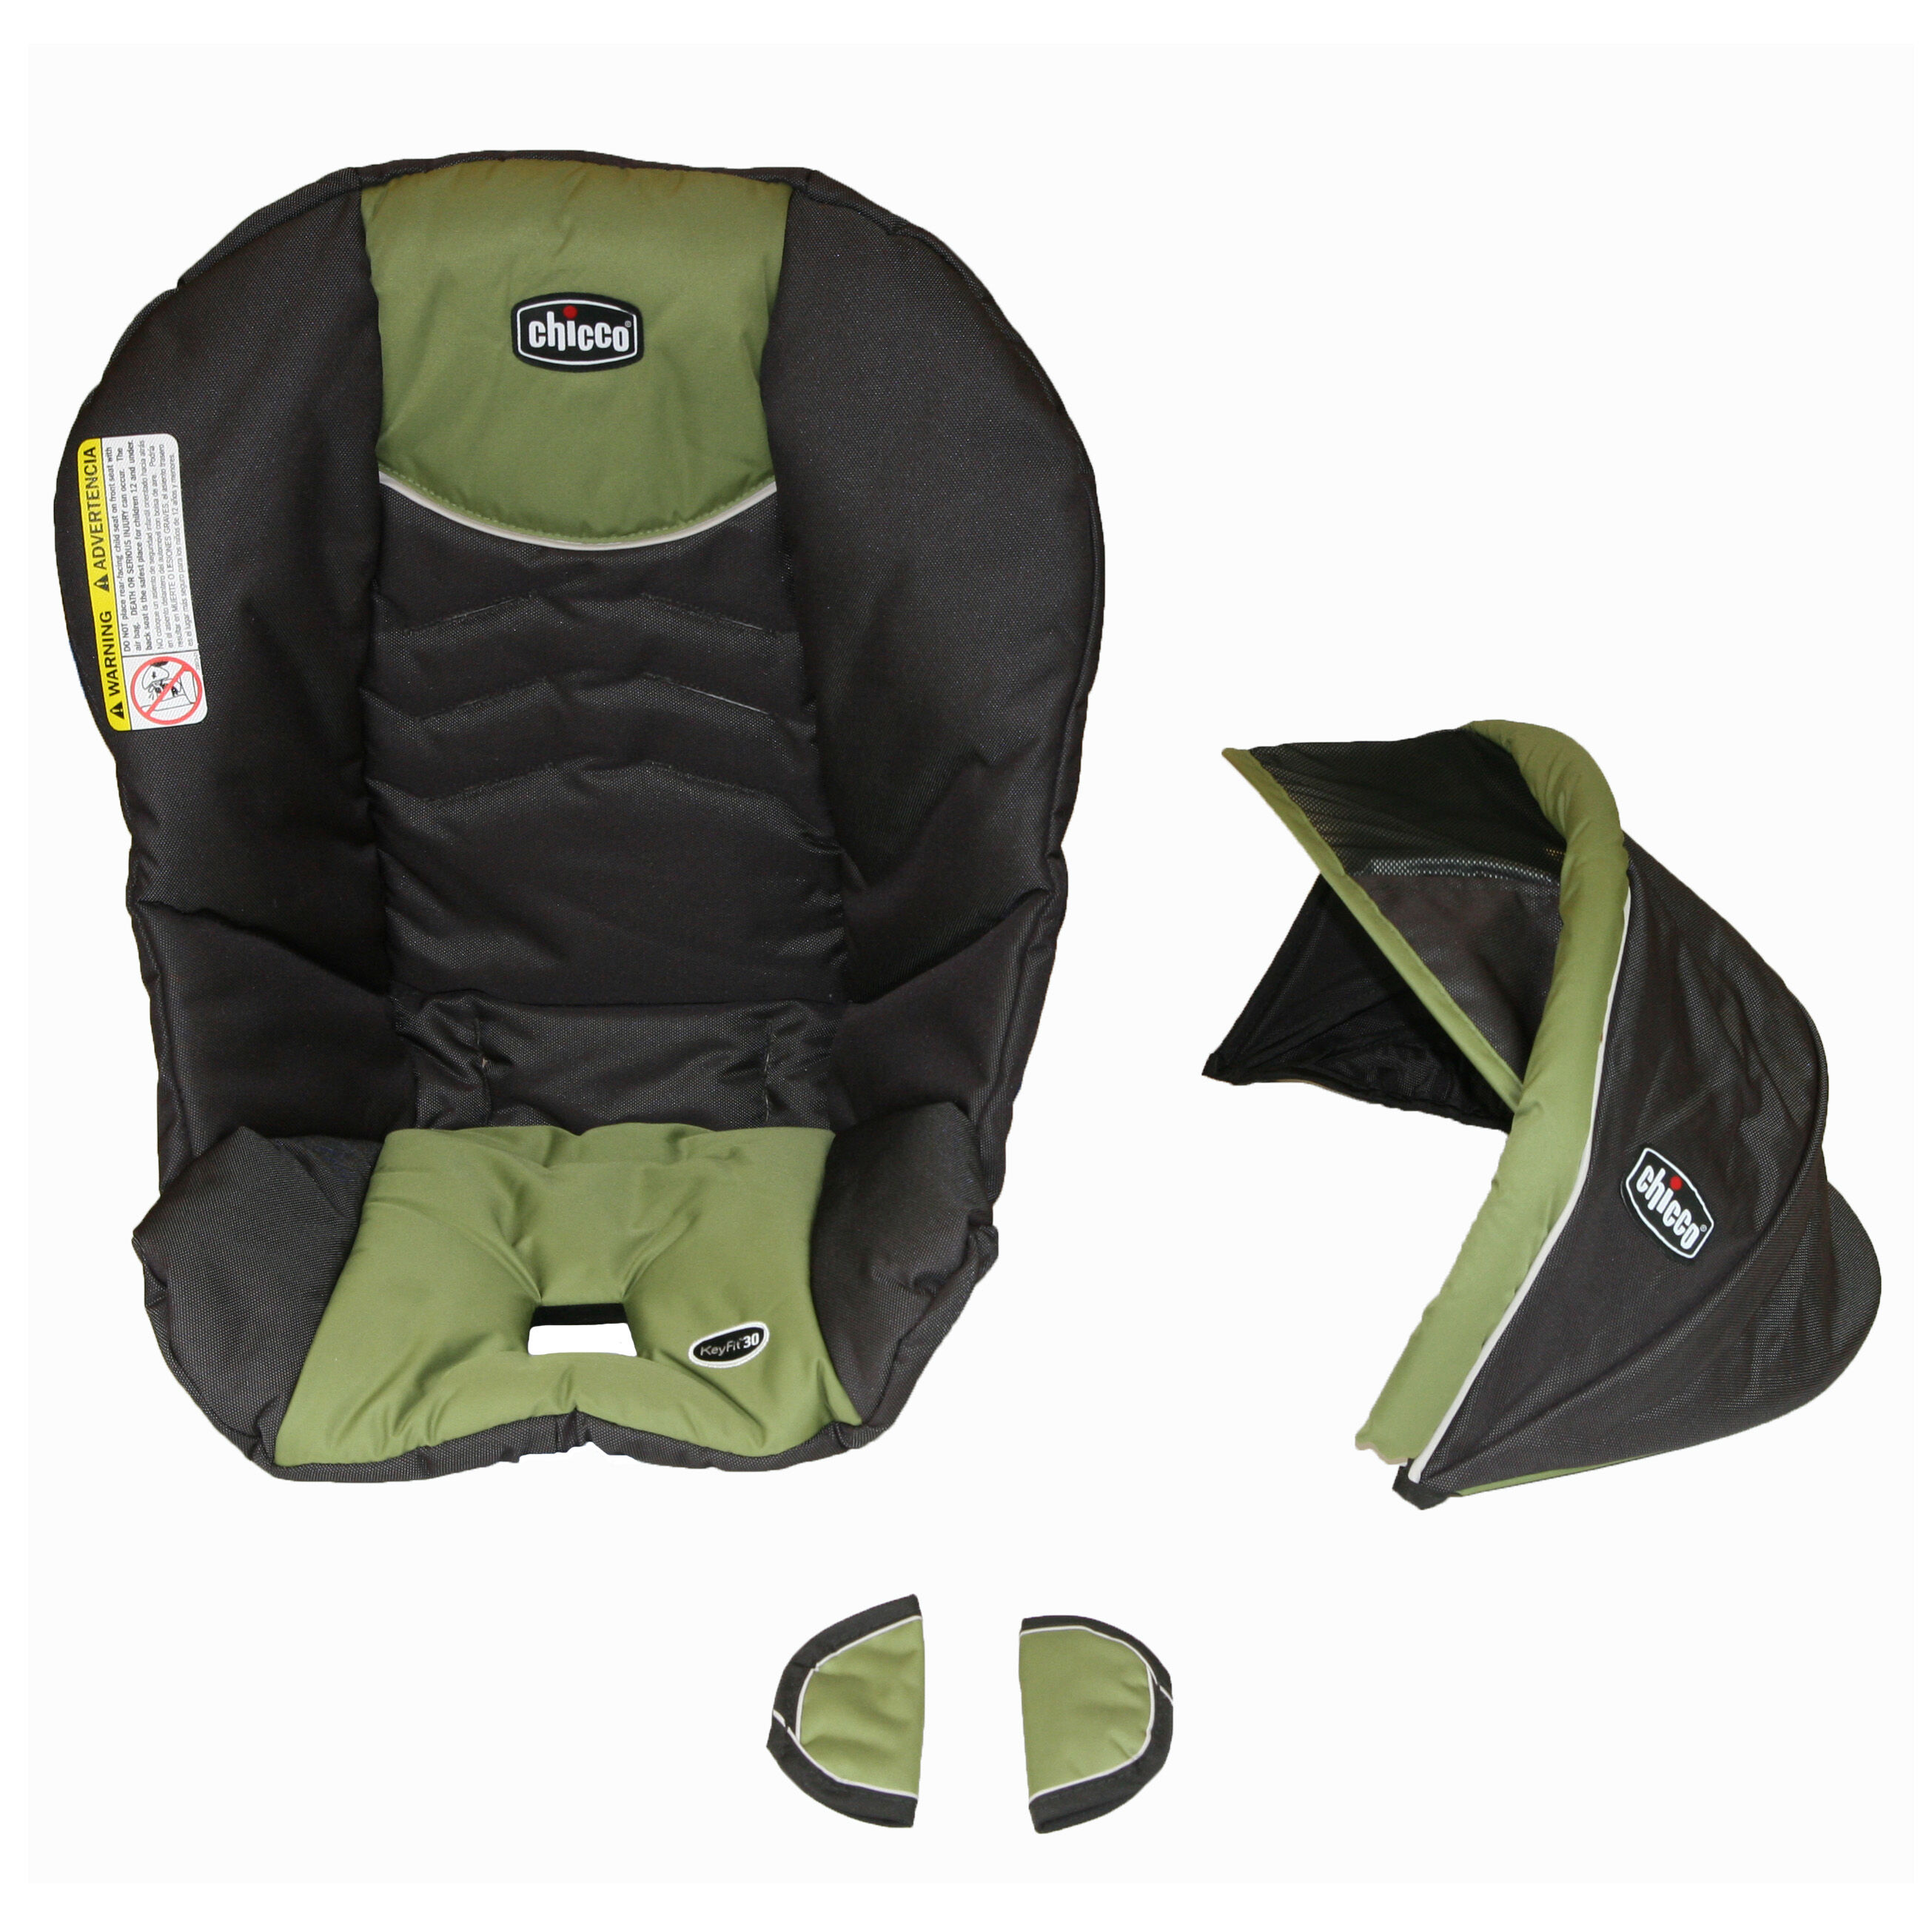 Chicco KeyFit 30 replacement seat cover canopy and shoulder pads for harness - Elm  sc 1 st  Chicco & Chicco KeyFit Seat Cover Canopy and Pads